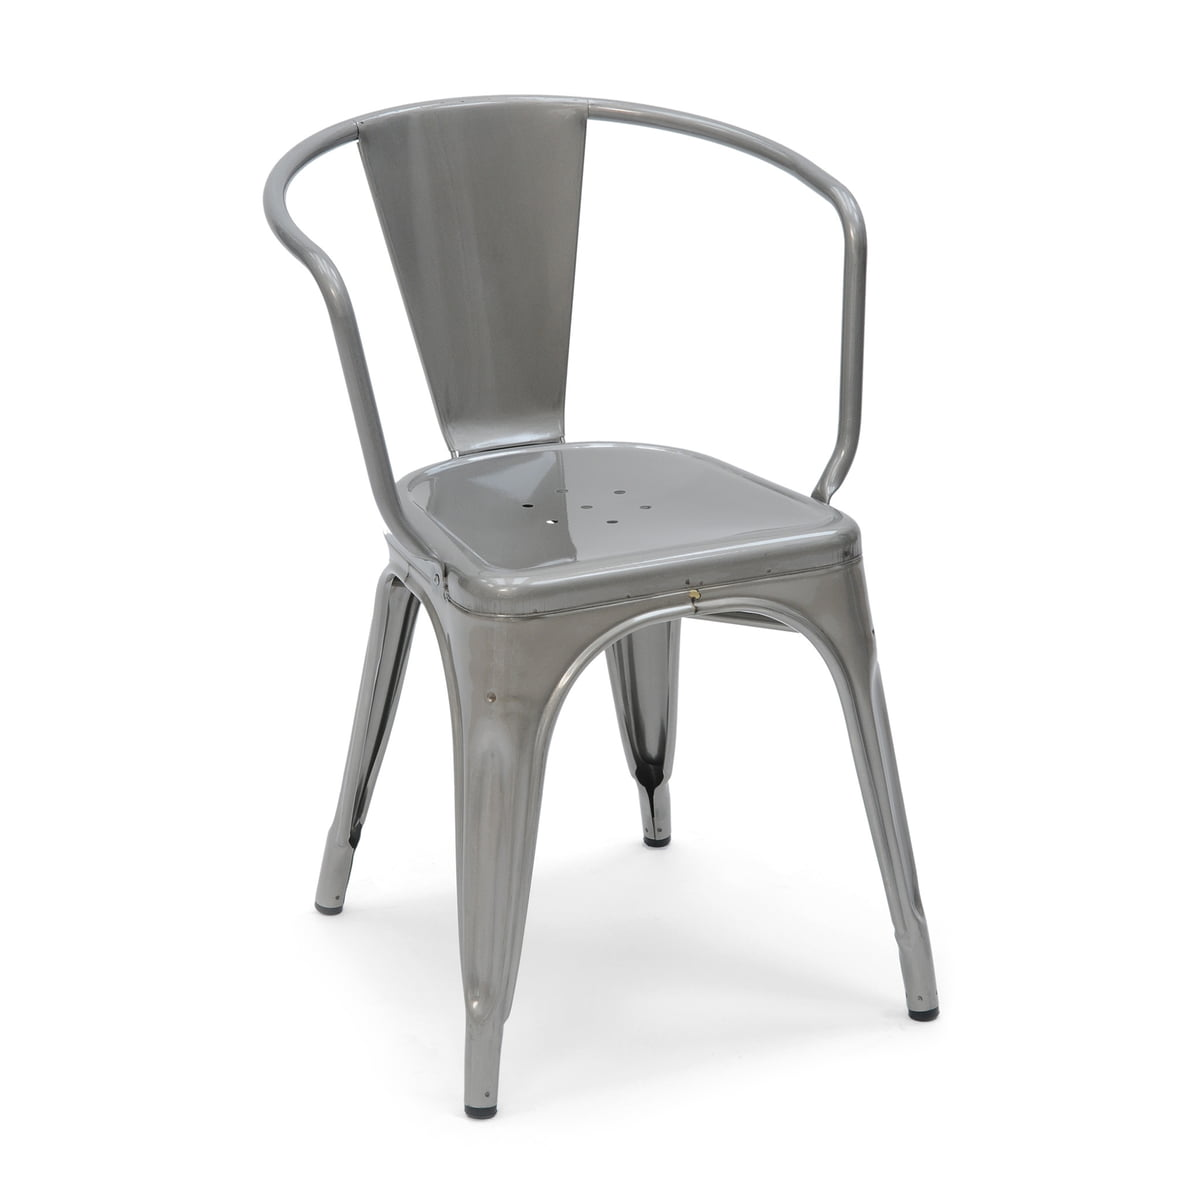 A56 Armchair By Tolix In Glossy Steel